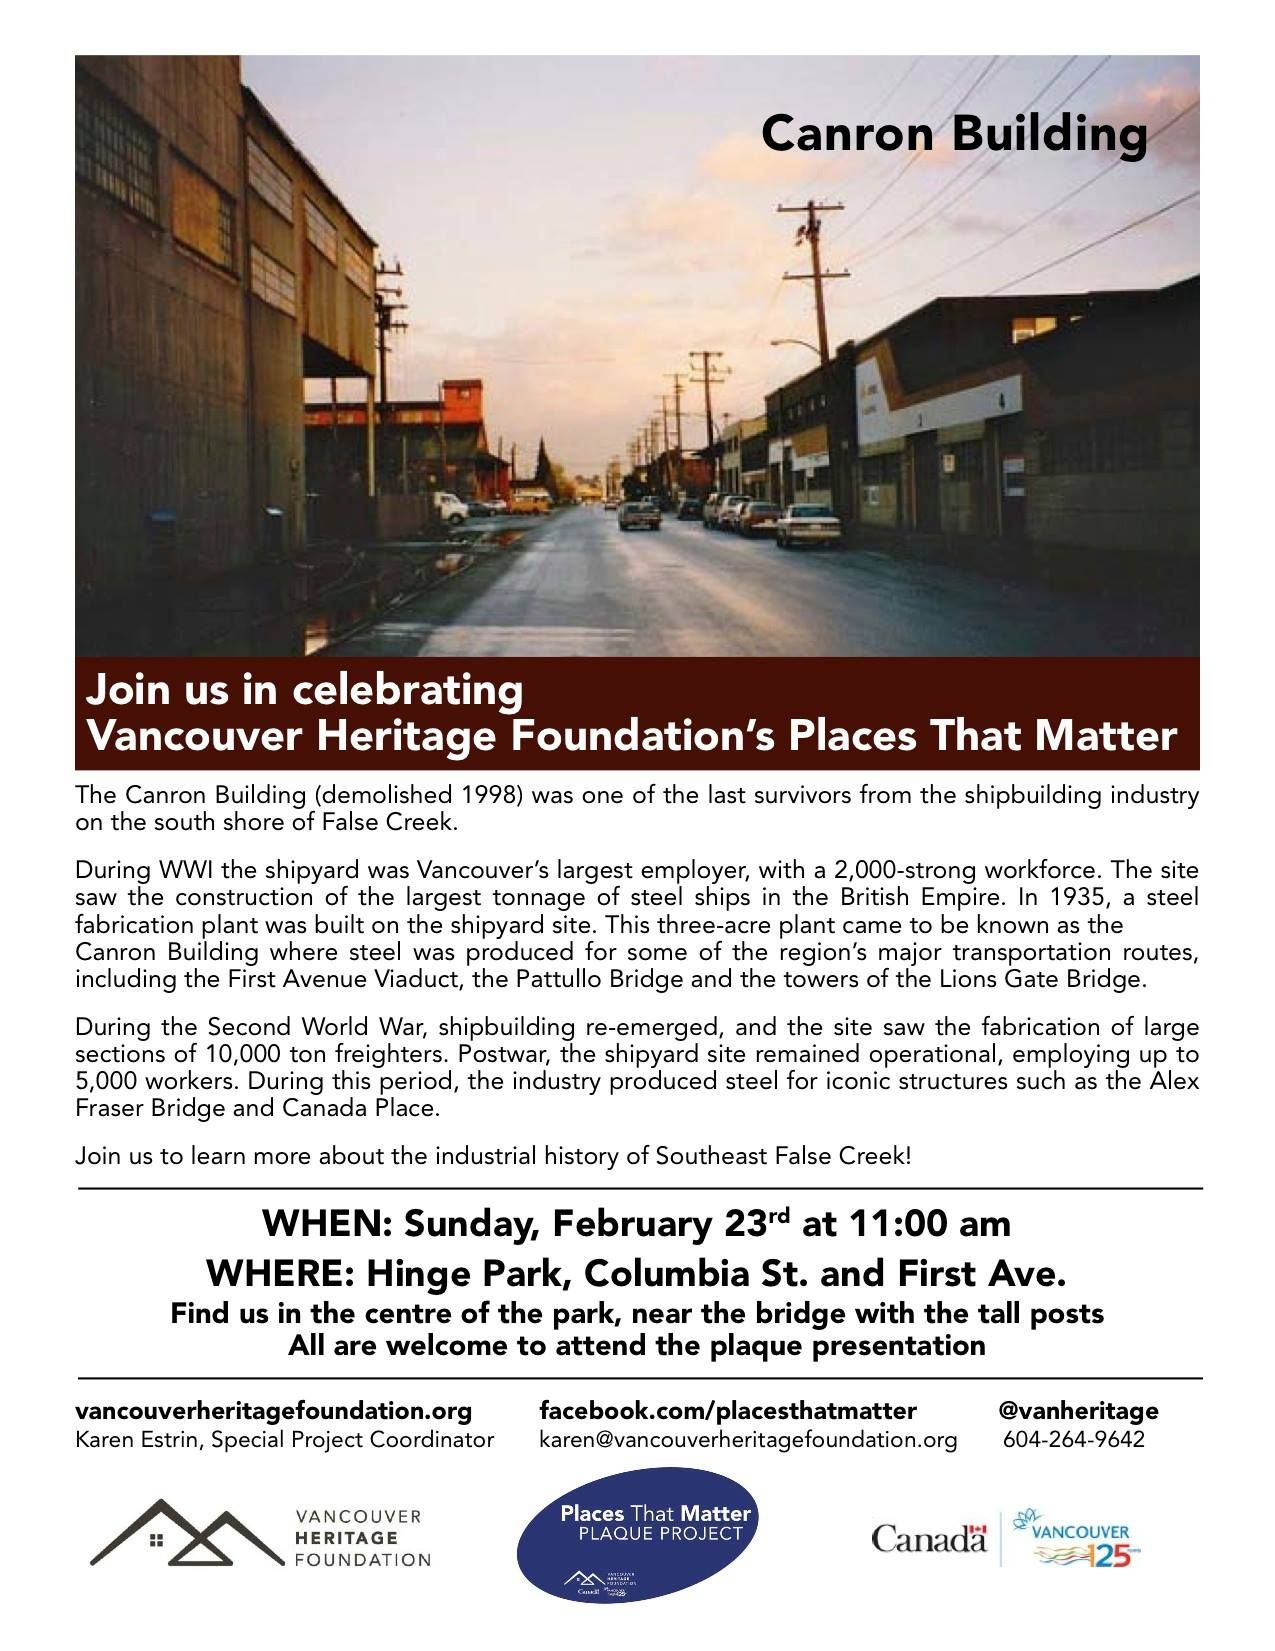 Learn About The History of Hinge Park and the Canron Building This Sunday